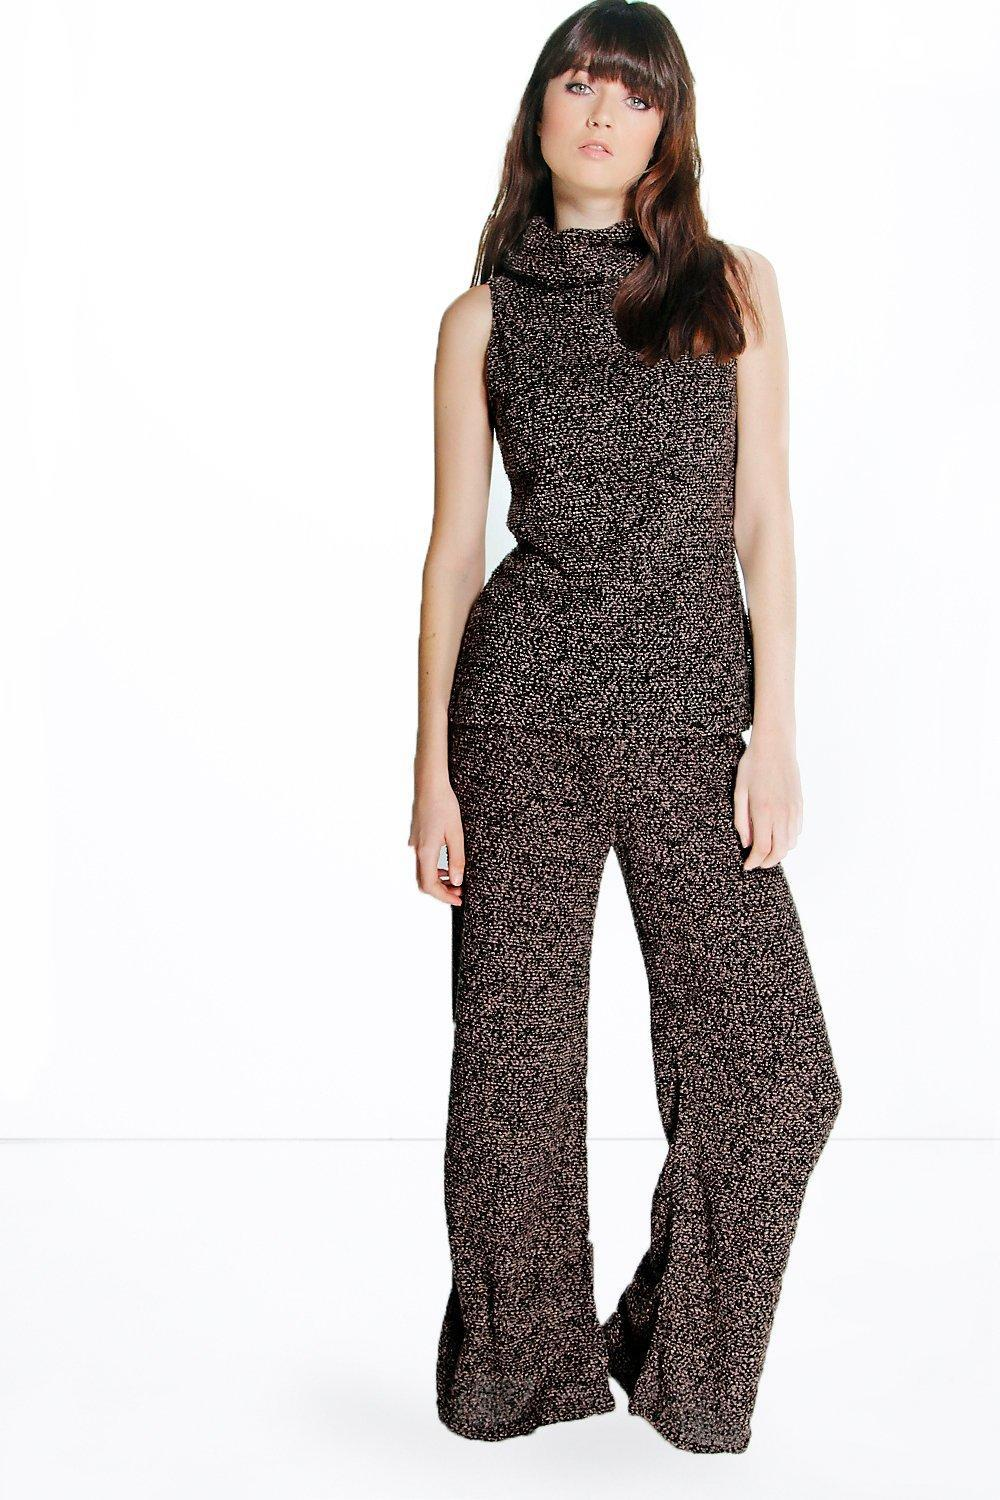 Roll Neck Jumper & Flares Knitted Co Ord Black - sleeve style: sleeveless; neckline: wide roll/funnel neck; style: standard; predominant colour: charcoal; occasions: casual, creative work; length: standard; fibres: polyester/polyamide - stretch; fit: standard fit; sleeve length: sleeveless; texture group: knits/crochet; pattern type: knitted - fine stitch; pattern size: standard; pattern: patterned/print; season: a/w 2015; wardrobe: highlight